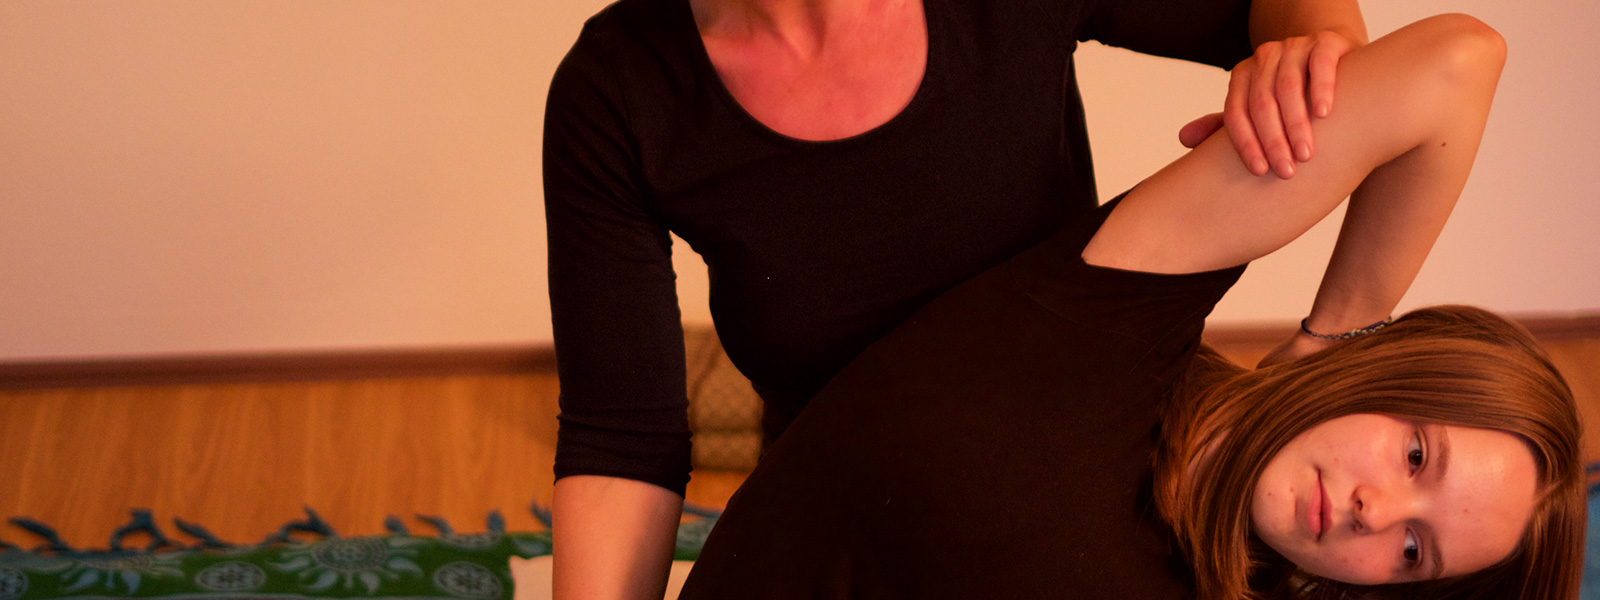 Handballendruck auf Oberarme - Thai Yoga Massage in Bad Säckingen mit Annette Kunkel.